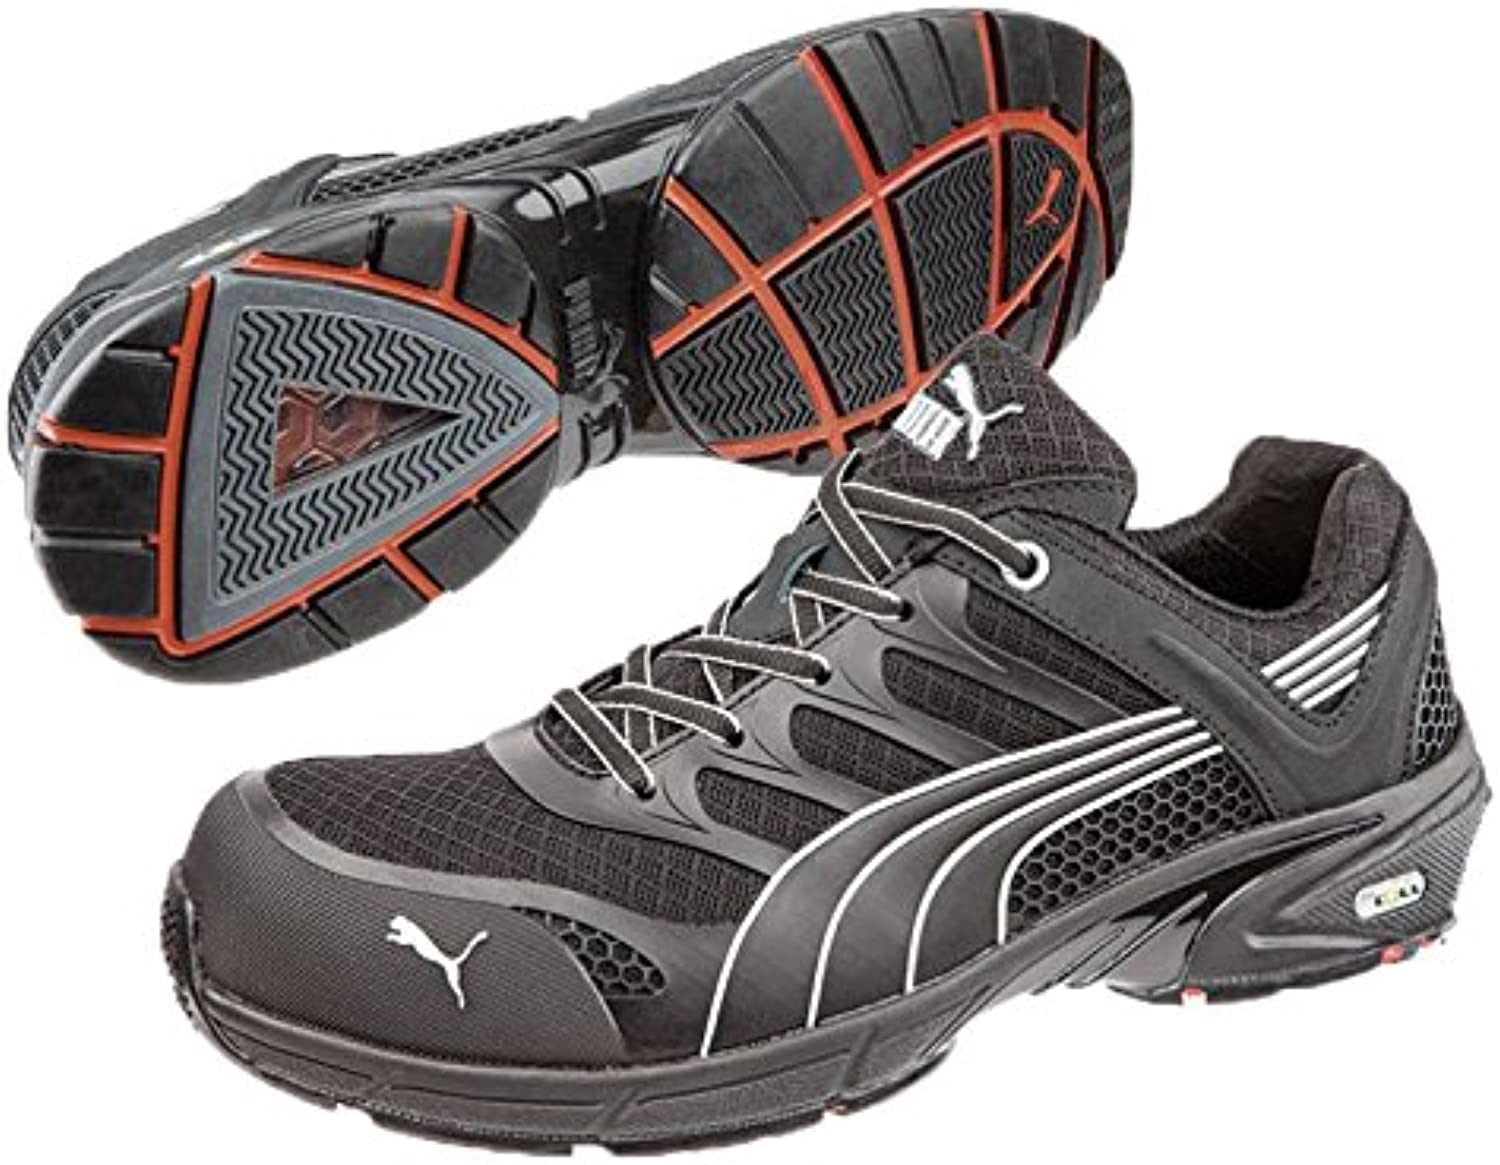 Puma Safety Shoes Shoes Shoes 47-642580-43, Chaussures de sécurité Adulte MixteB00G8ZR0OAParent 7dc365